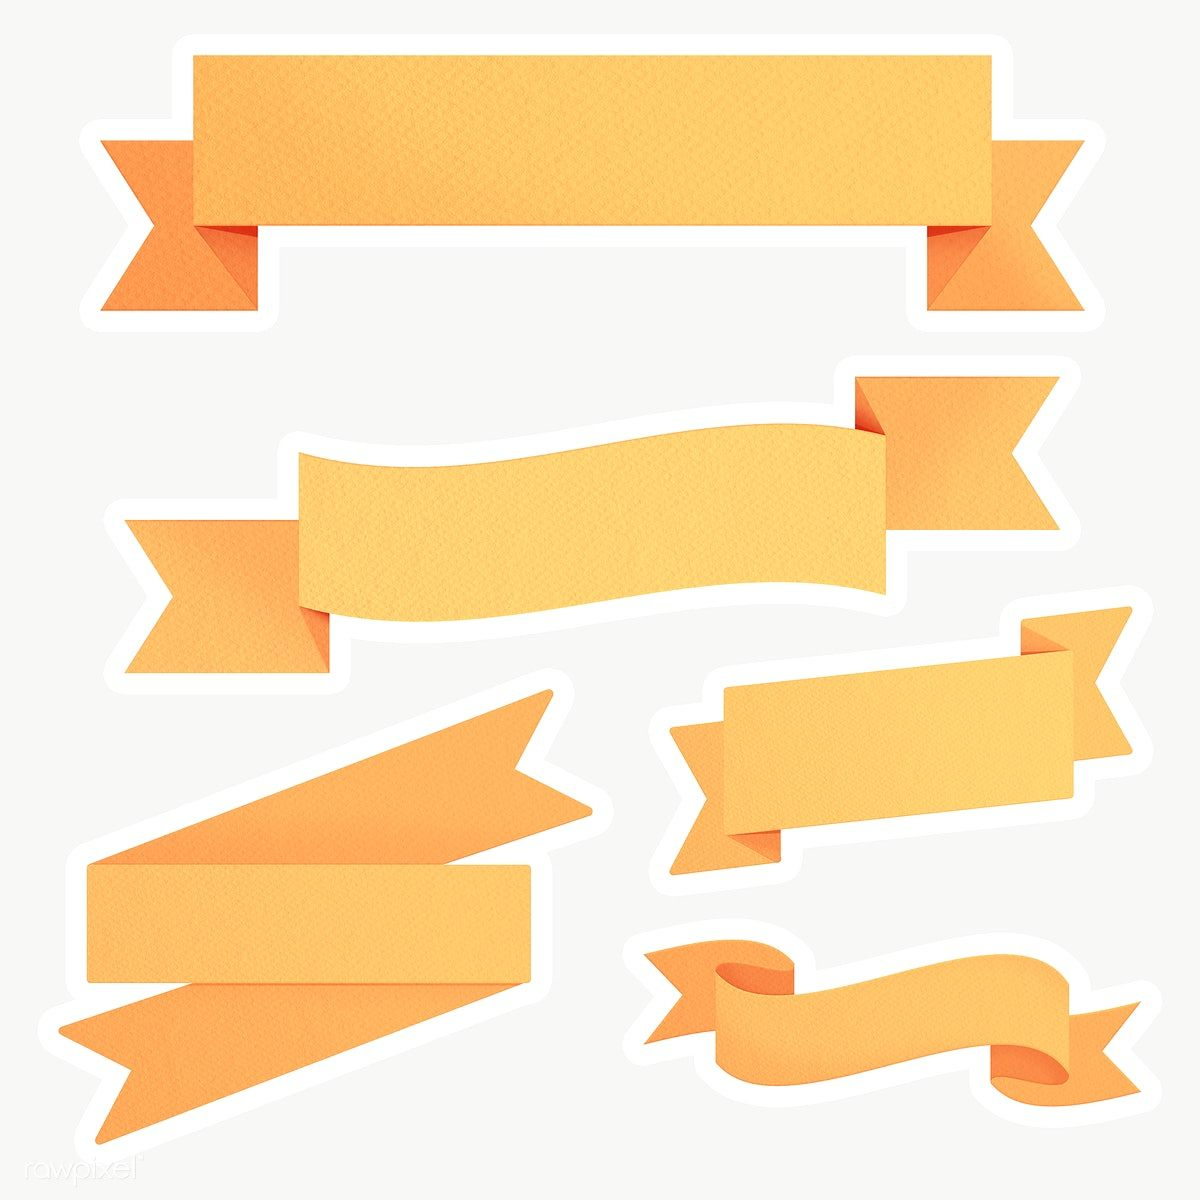 Marigold Yellow Ribbon Banner Sticker With White Border Design Element Free Image By Rawpixel Com Sasi Ribbon Banner Yellow Ribbon Free Illustrations